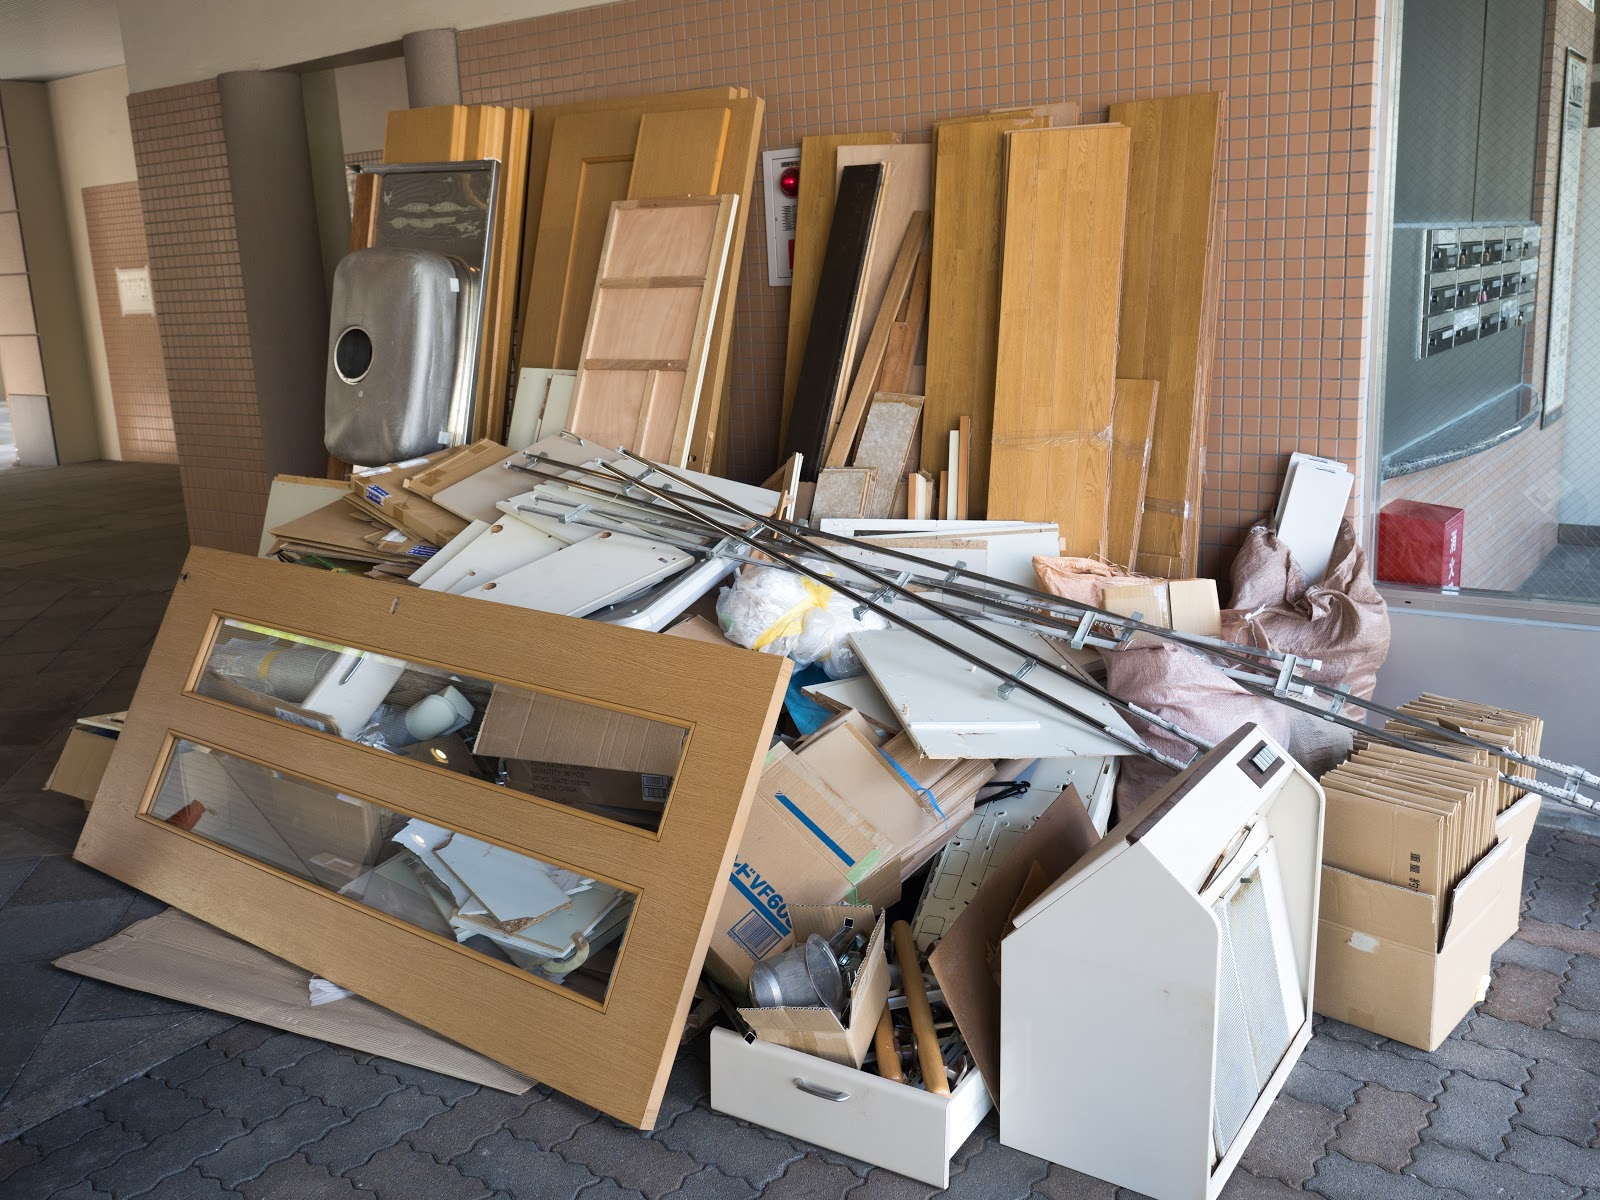 disposing of remodeling waste